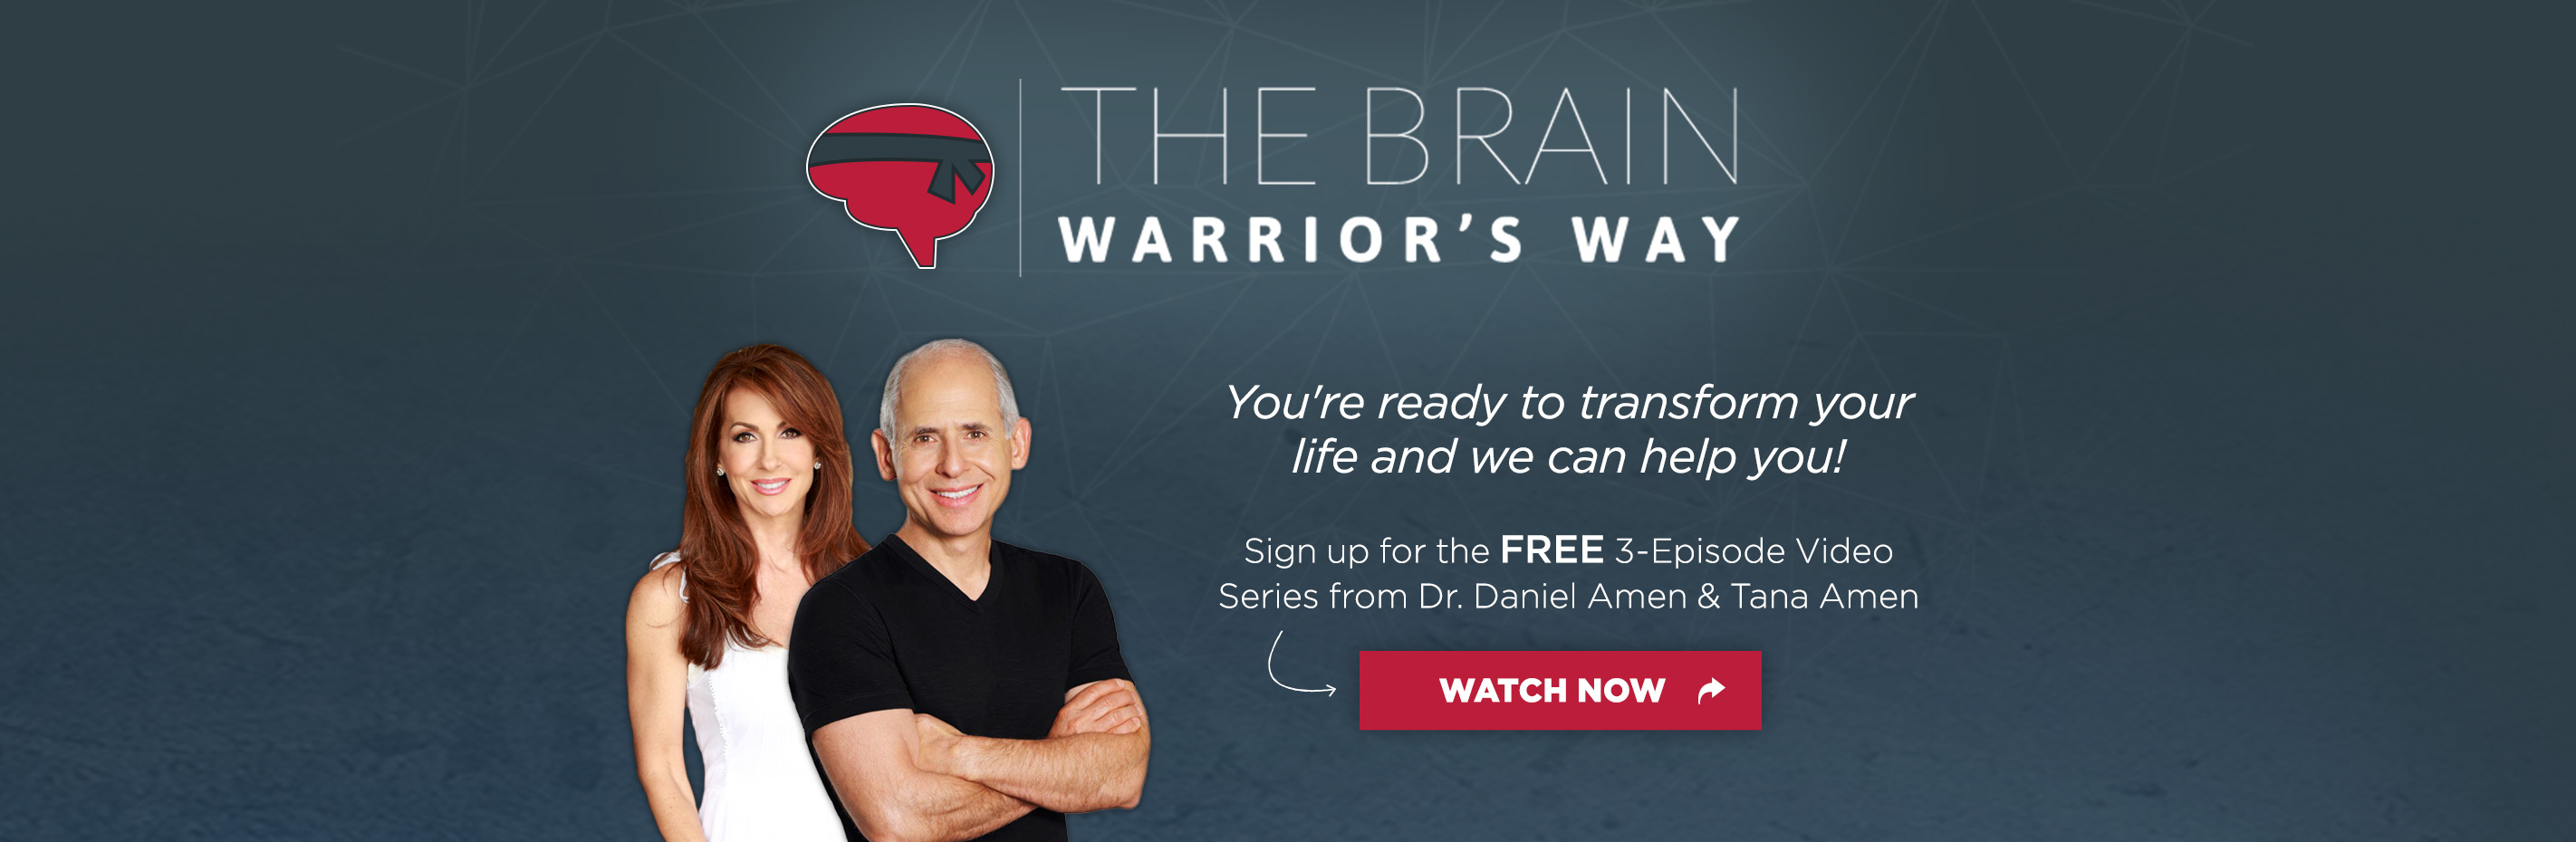 MW15-Brain-Warriors-Way-Banners-AMEN-LIFESTYLE-1422x465